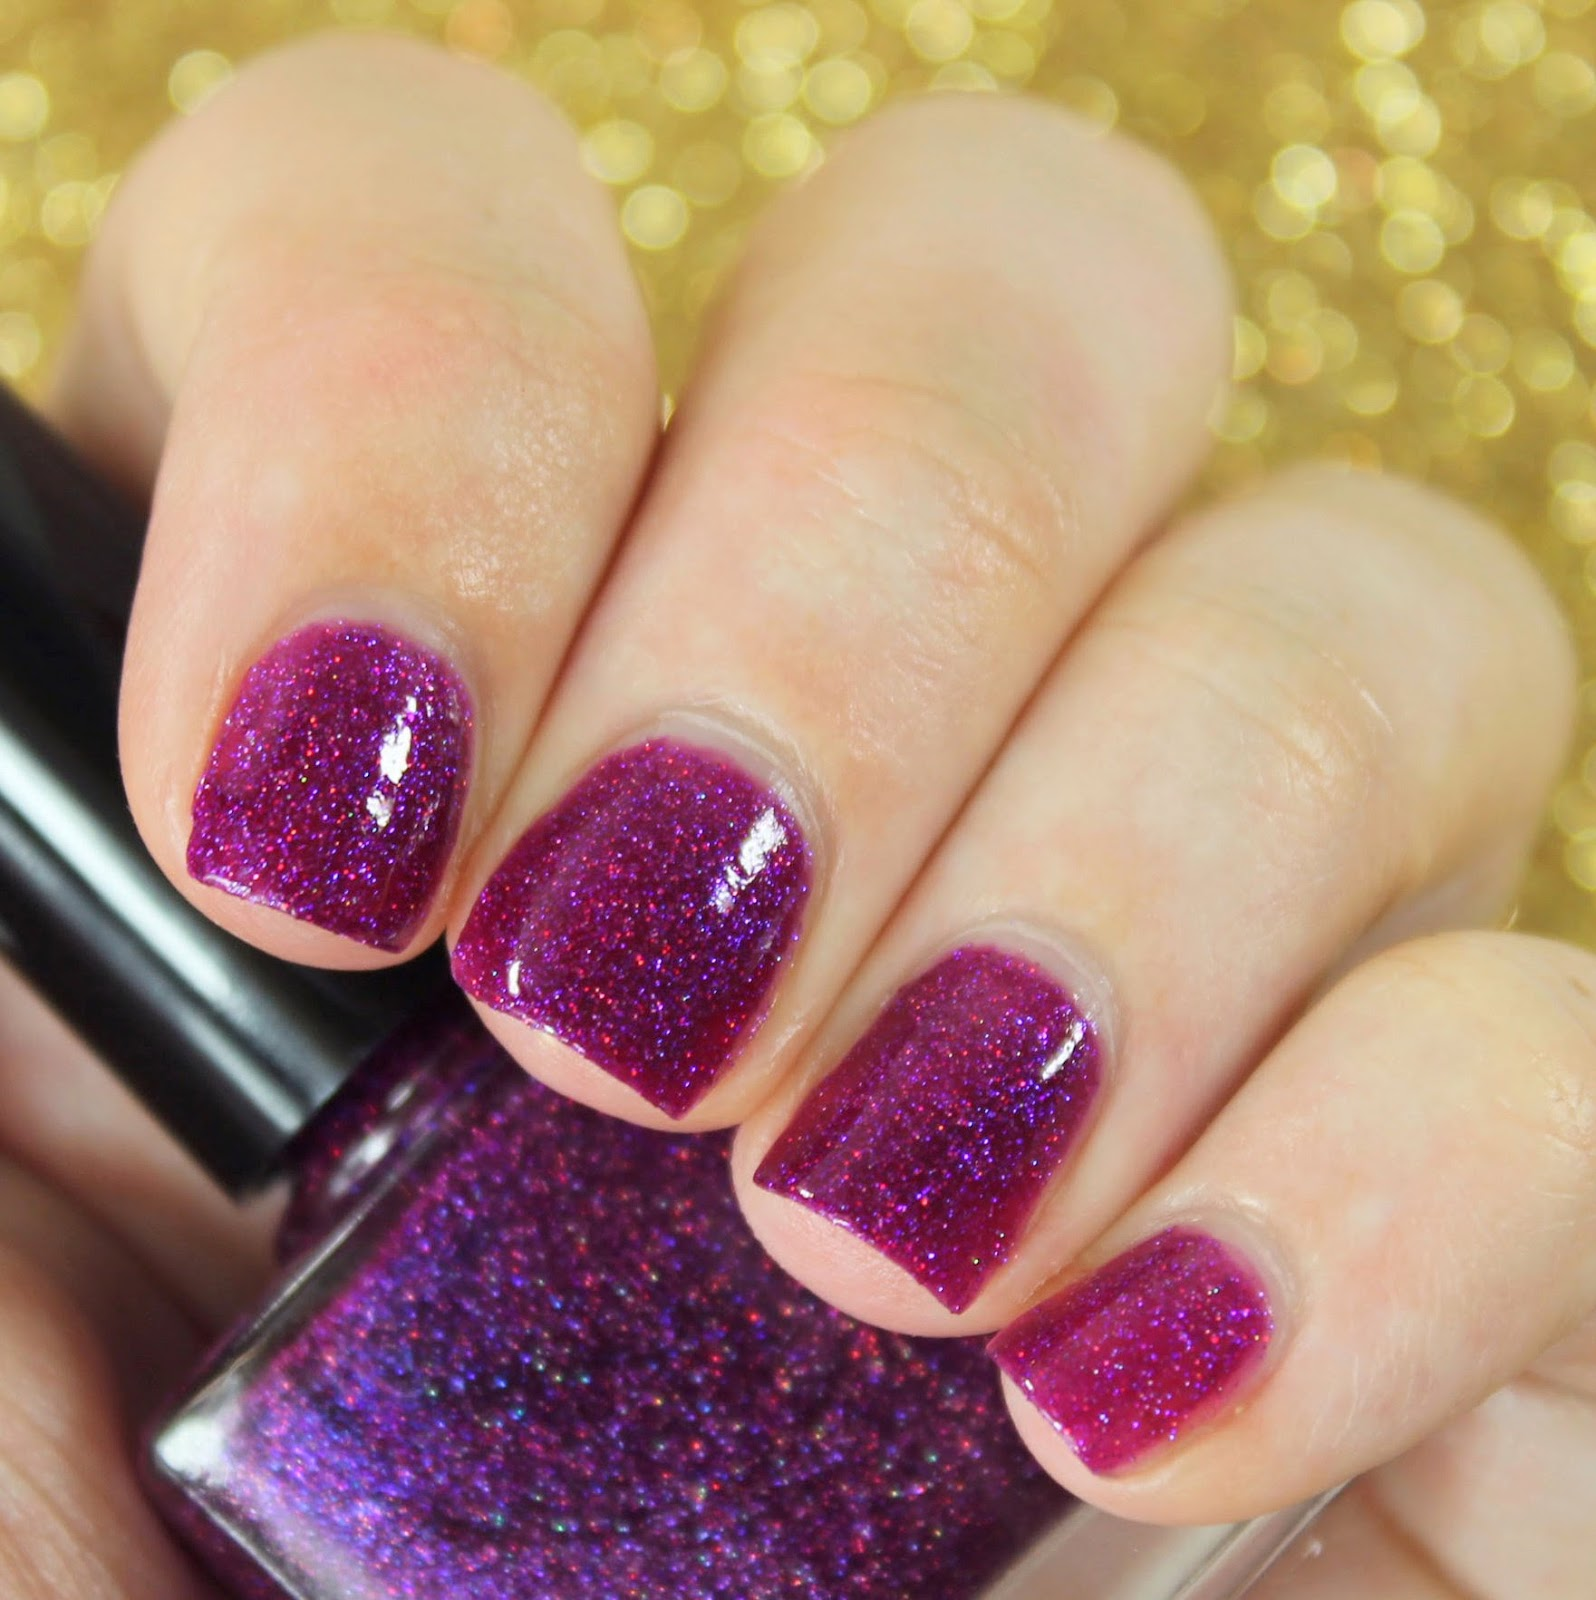 Femme Fatale Cosmetics Touch of Madness nail polish swatches & review